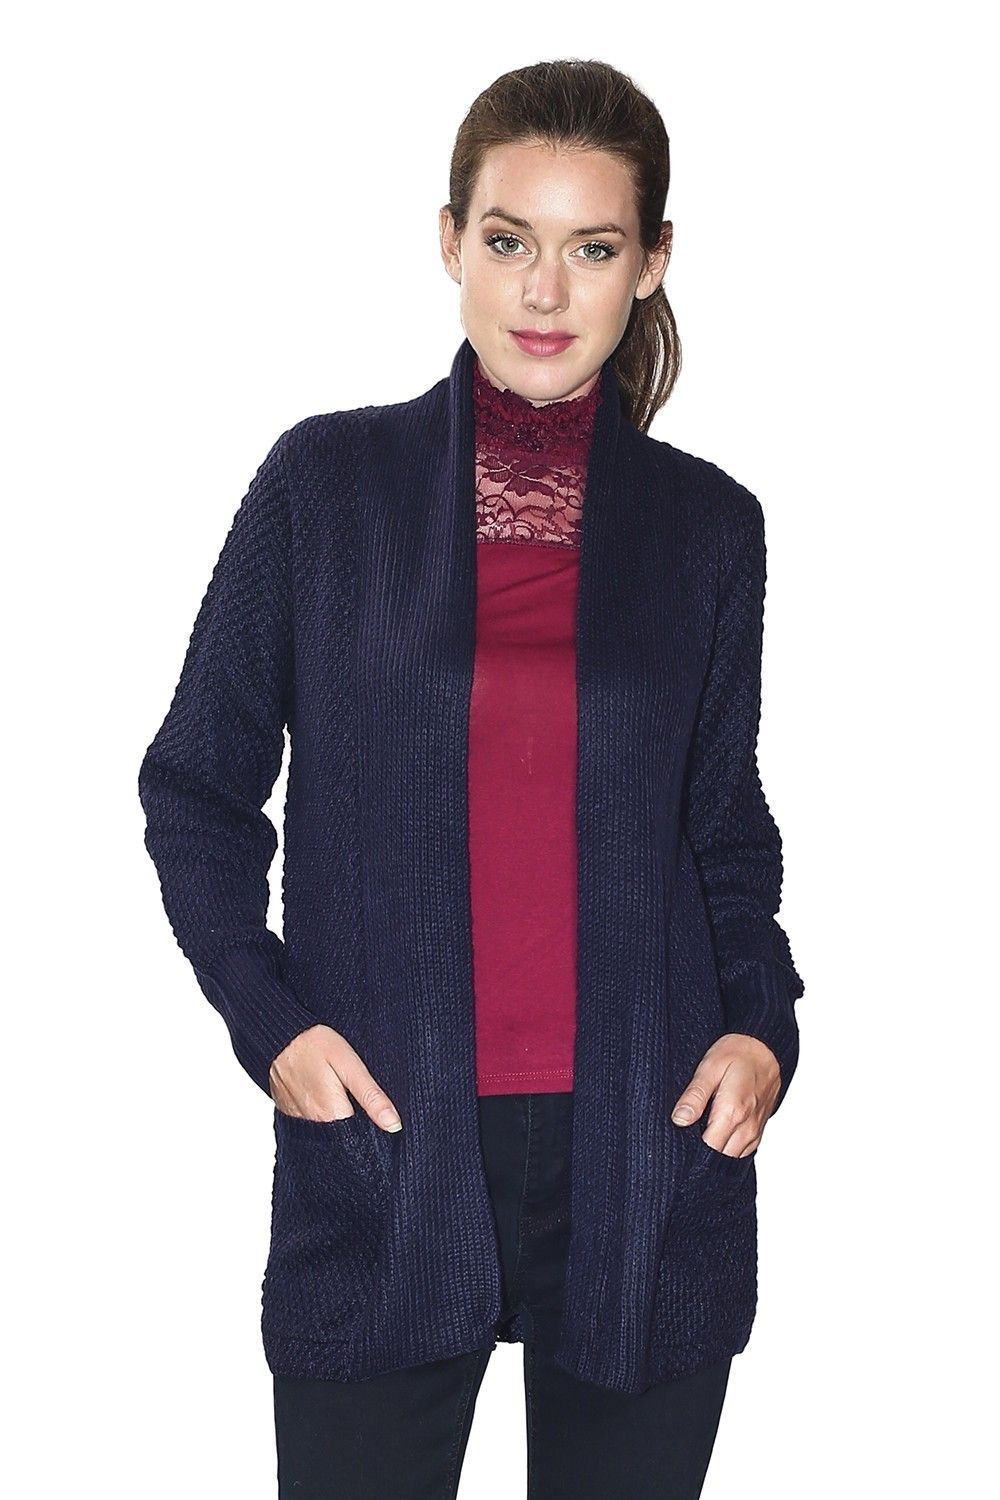 C&JO Pineapple Yarn Cardigan with Pockets in Navy